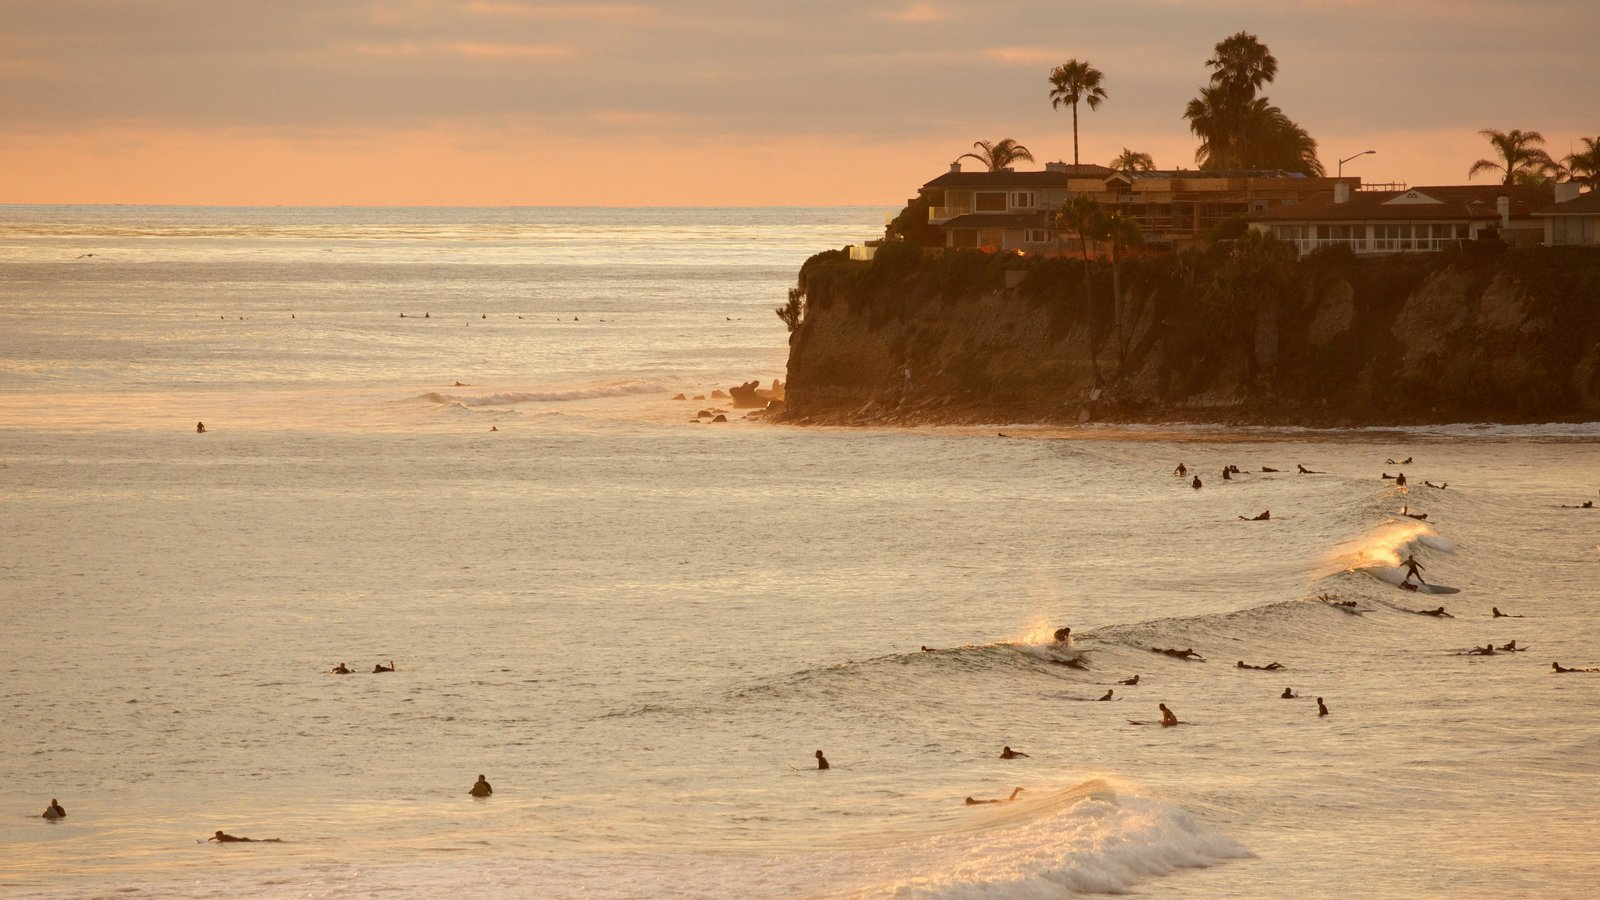 Pacific Beach Park which includes surfing, general coastal views and rocky coastline